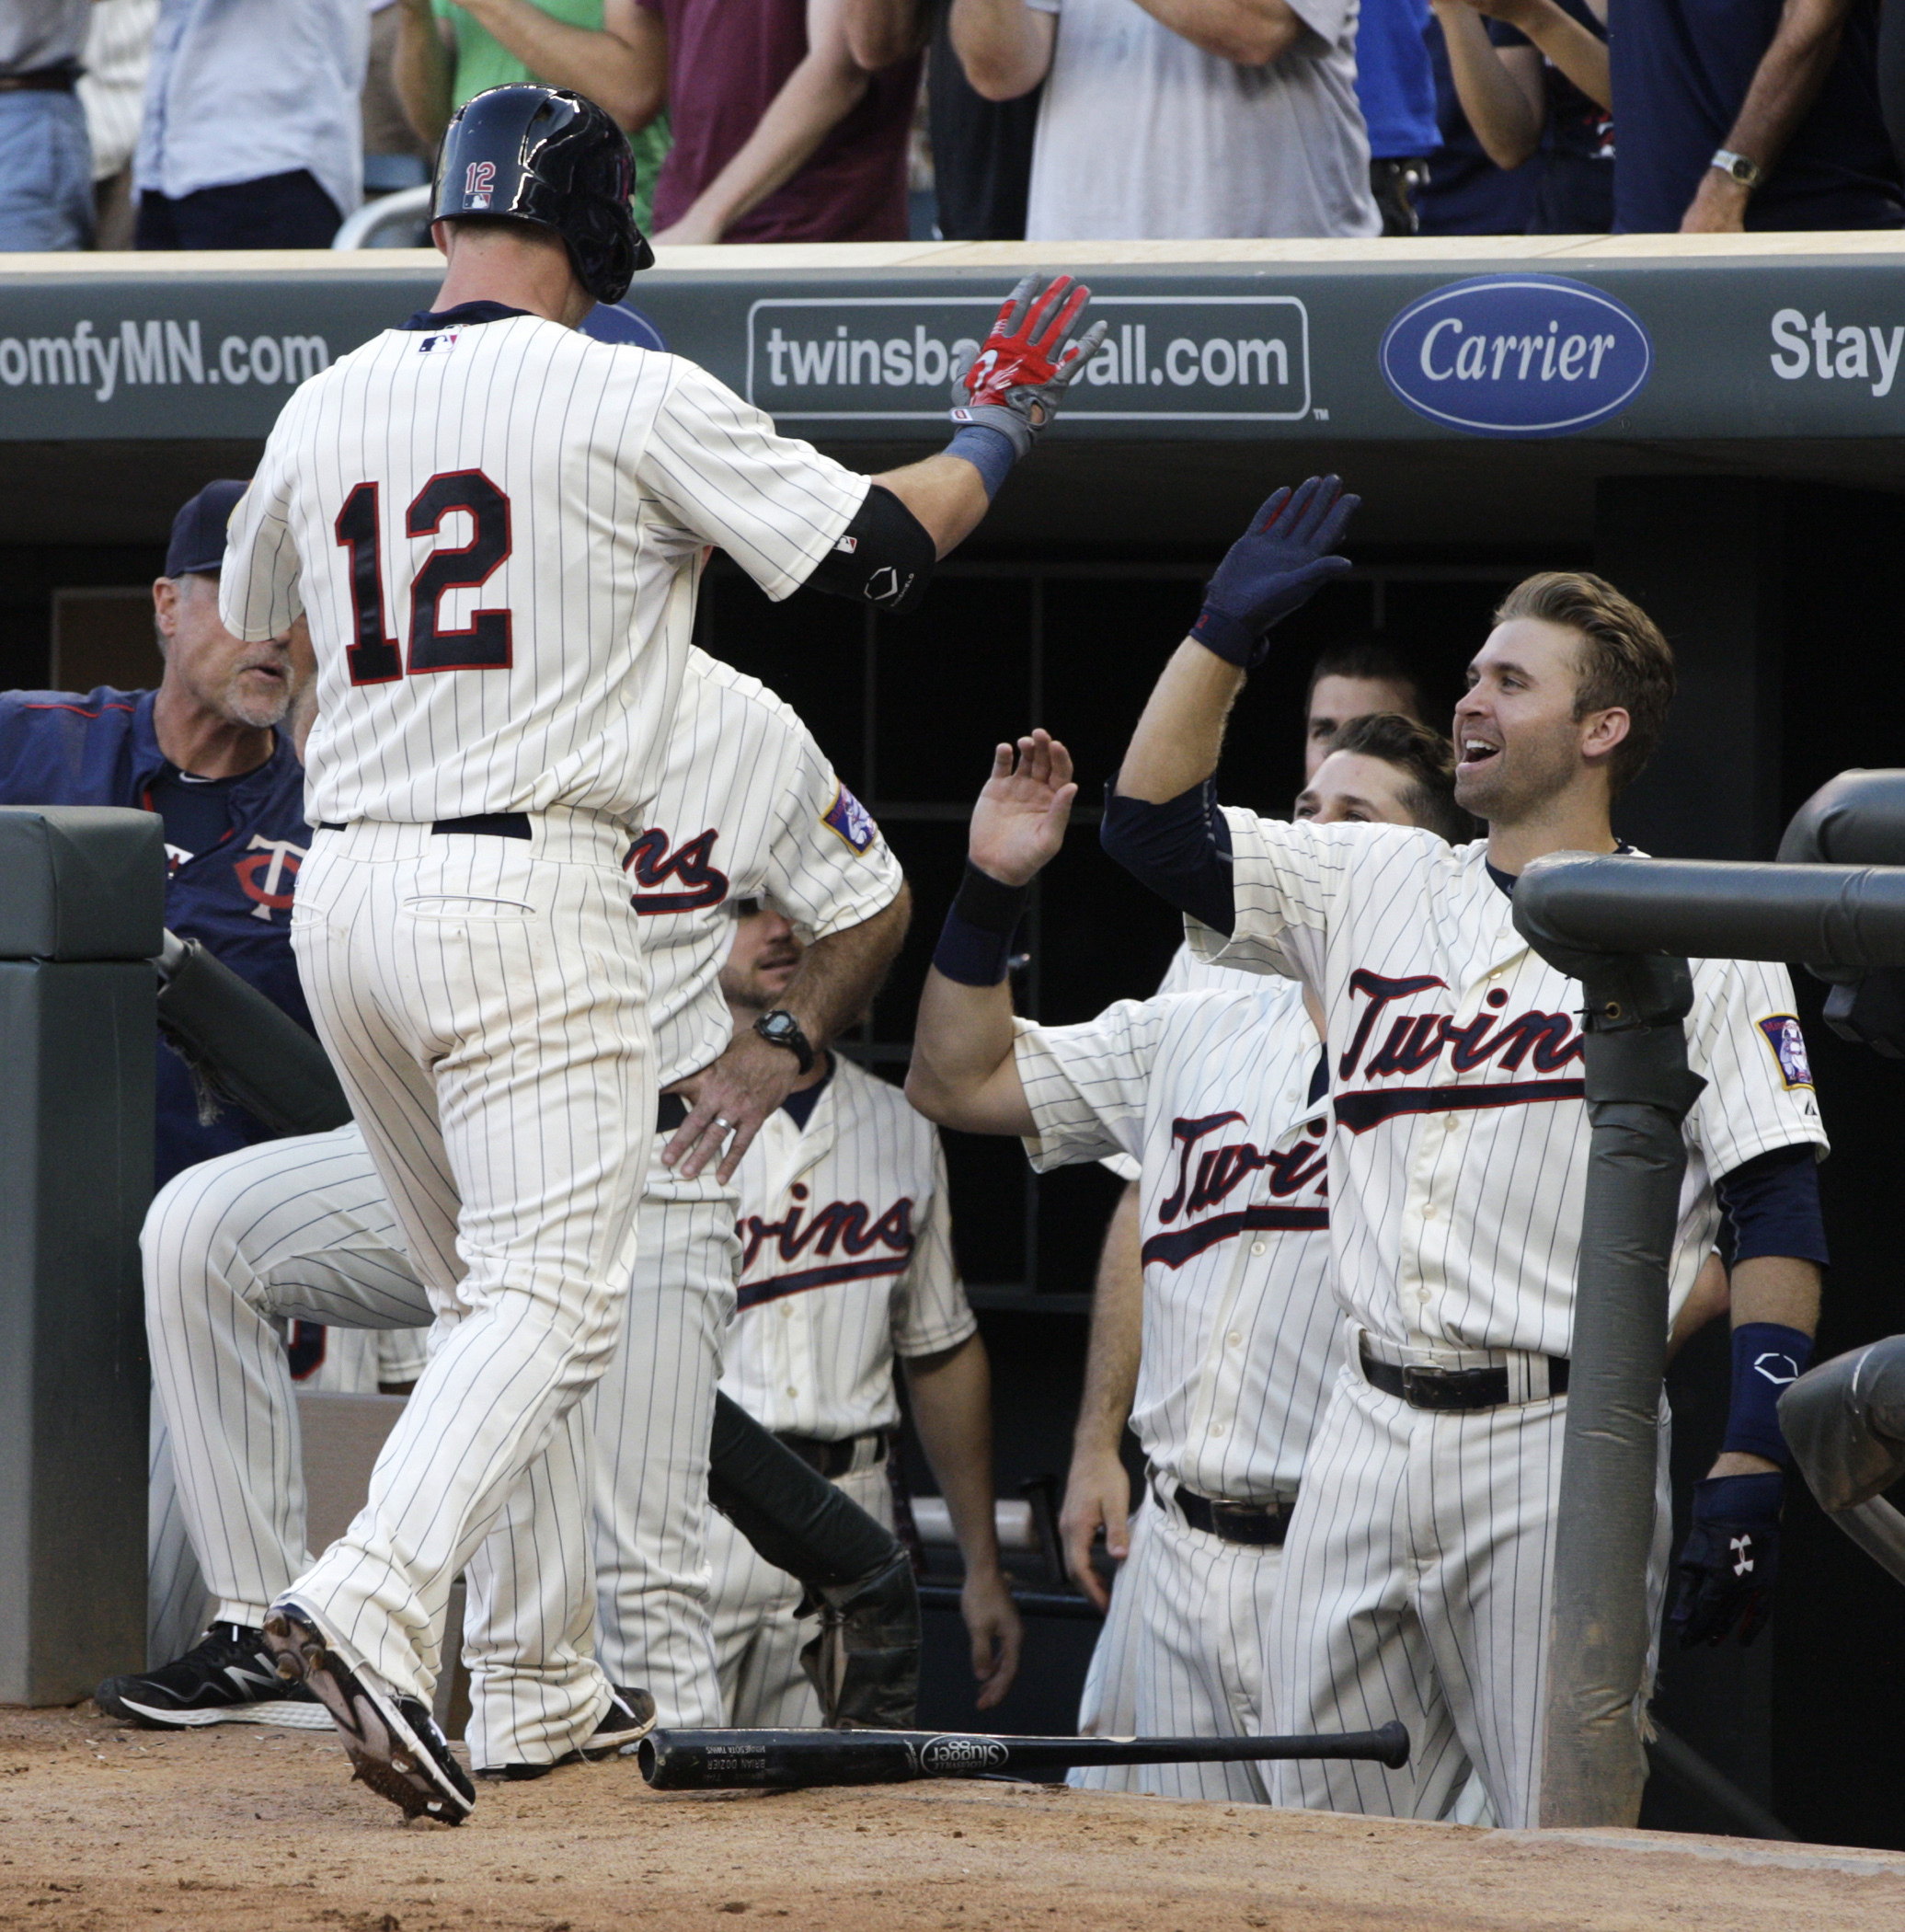 Minnesota Twins' Chris Herrmann (12) is congratulated by teammate Brian Dozier, right, after hitting a solo home run off Cleveland Indians starting pitcher Josh Tomlin during the fifth inning of a baseball game Saturday, Aug. 15, 2015, in Minneapolis. AP